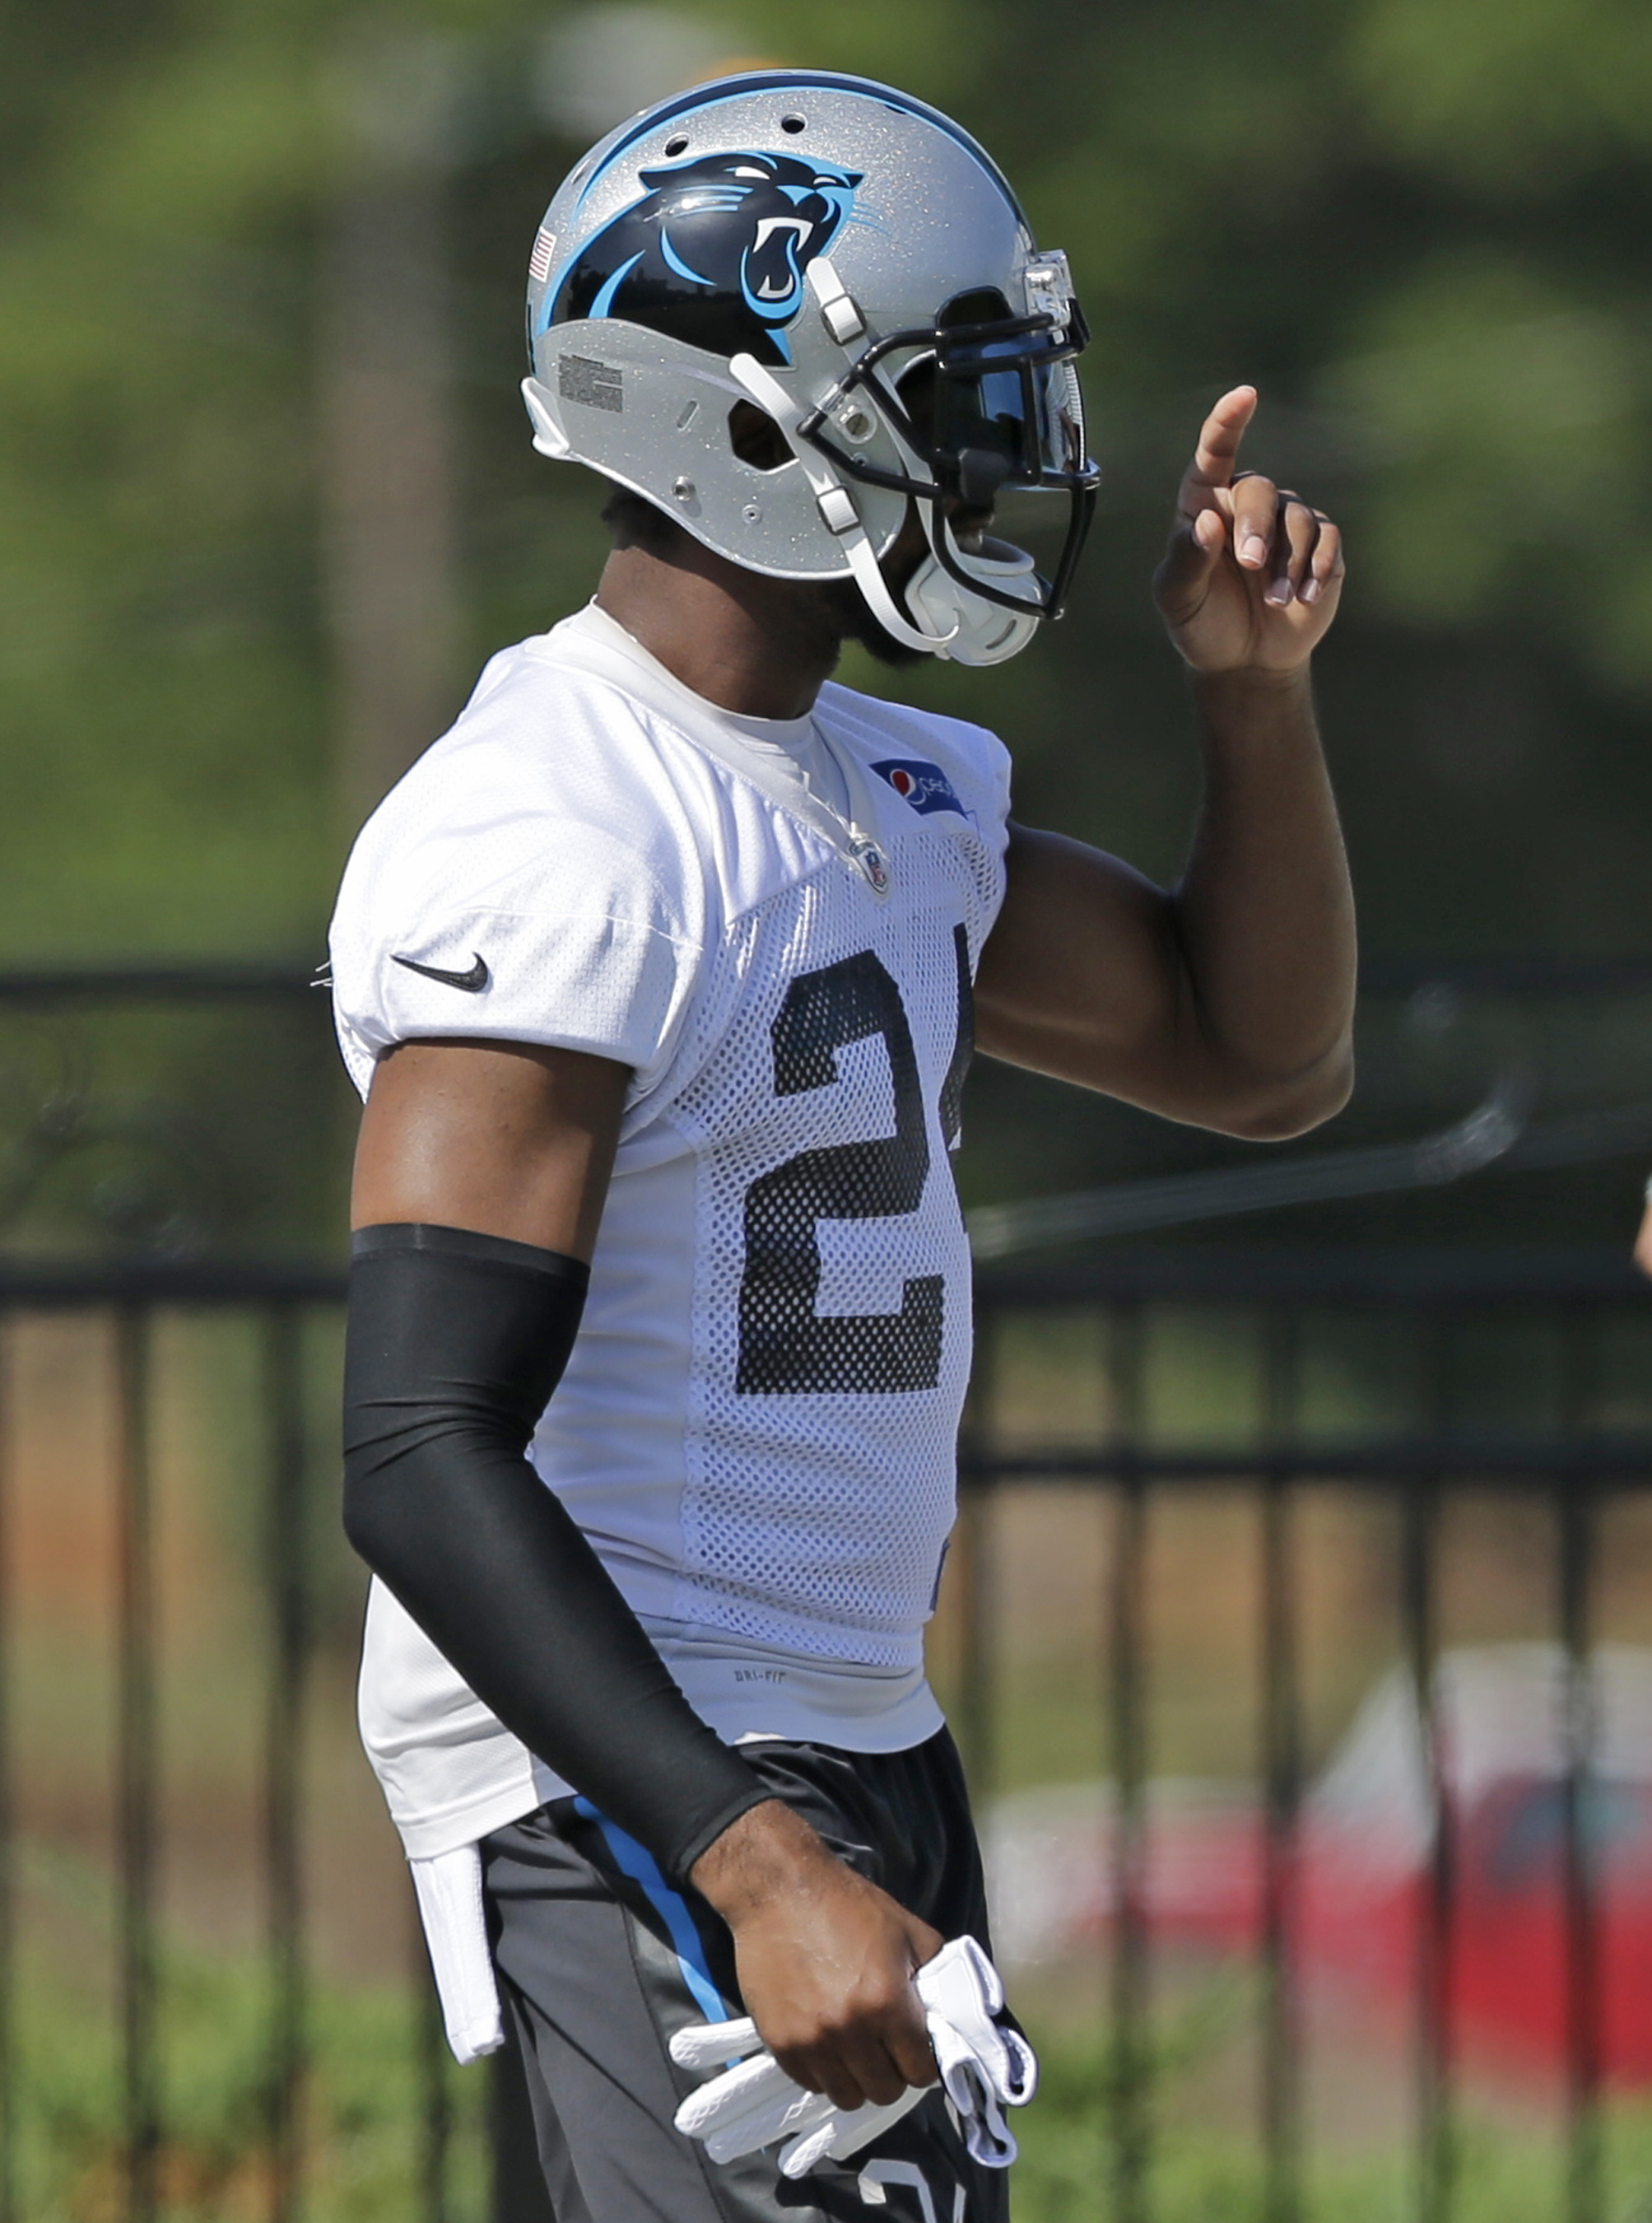 Carolina Panthers' Josh Norman waves to teammates as he arrives for the NFL football minicamp in Charlotte, N.C., Tuesday, June 16, 2015. Norman is on the verge of emerging as one of the best cornerbacks in the NFL, according to Panthers assistant head co